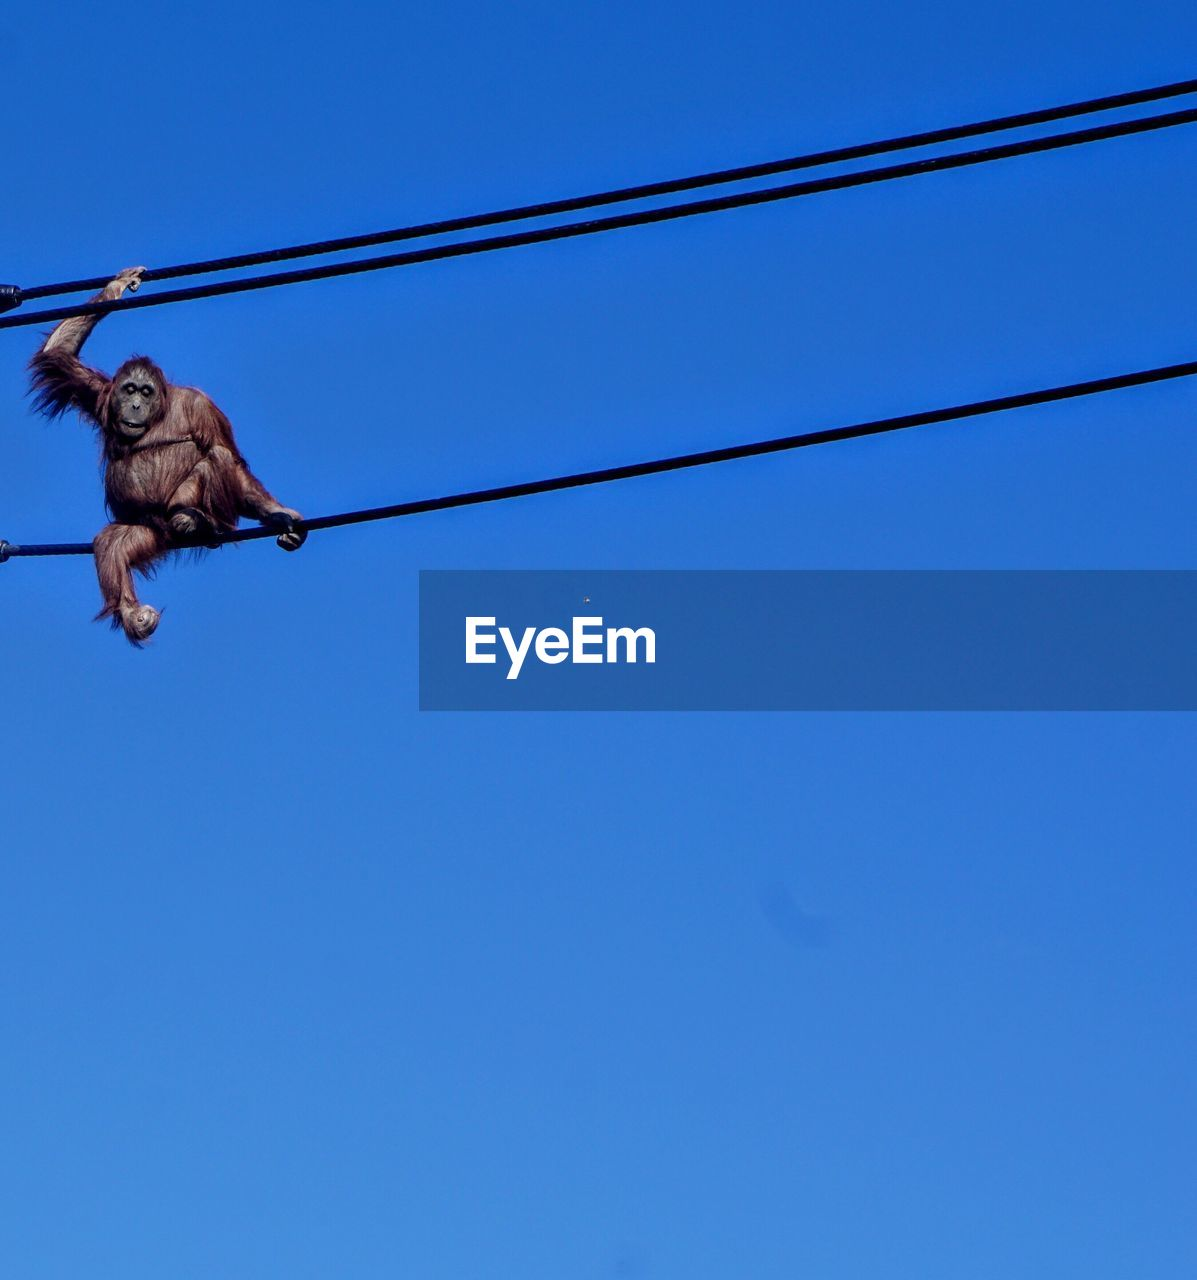 sky, animal, one animal, blue, low angle view, clear sky, animal themes, cable, vertebrate, day, animal wildlife, no people, copy space, animals in the wild, nature, rope, power line, hanging, connection, bird, outdoors, electricity, directly below, power supply